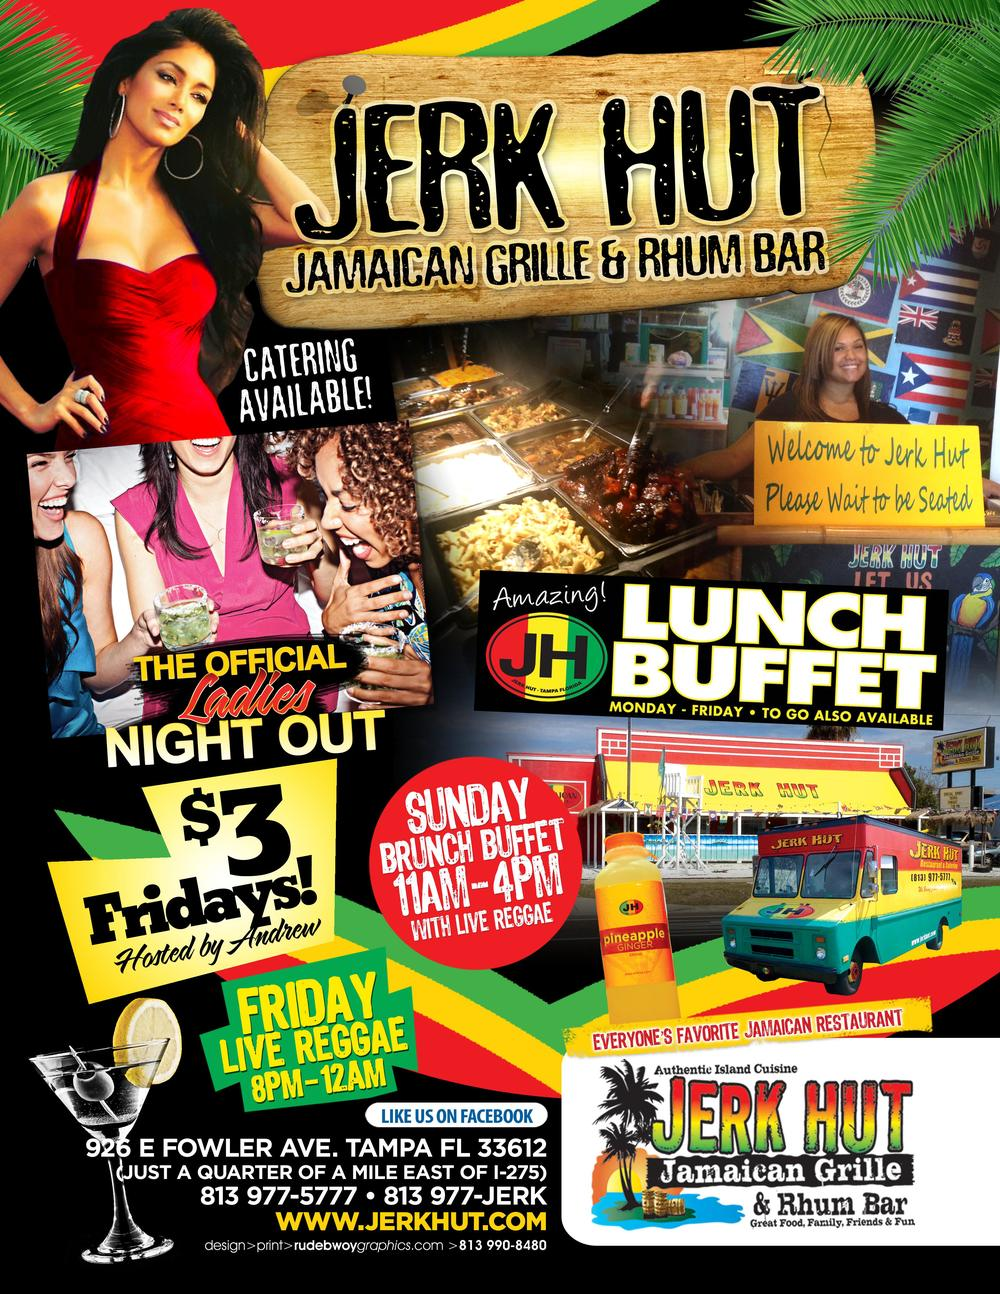 jerk hut full page ad.jpg